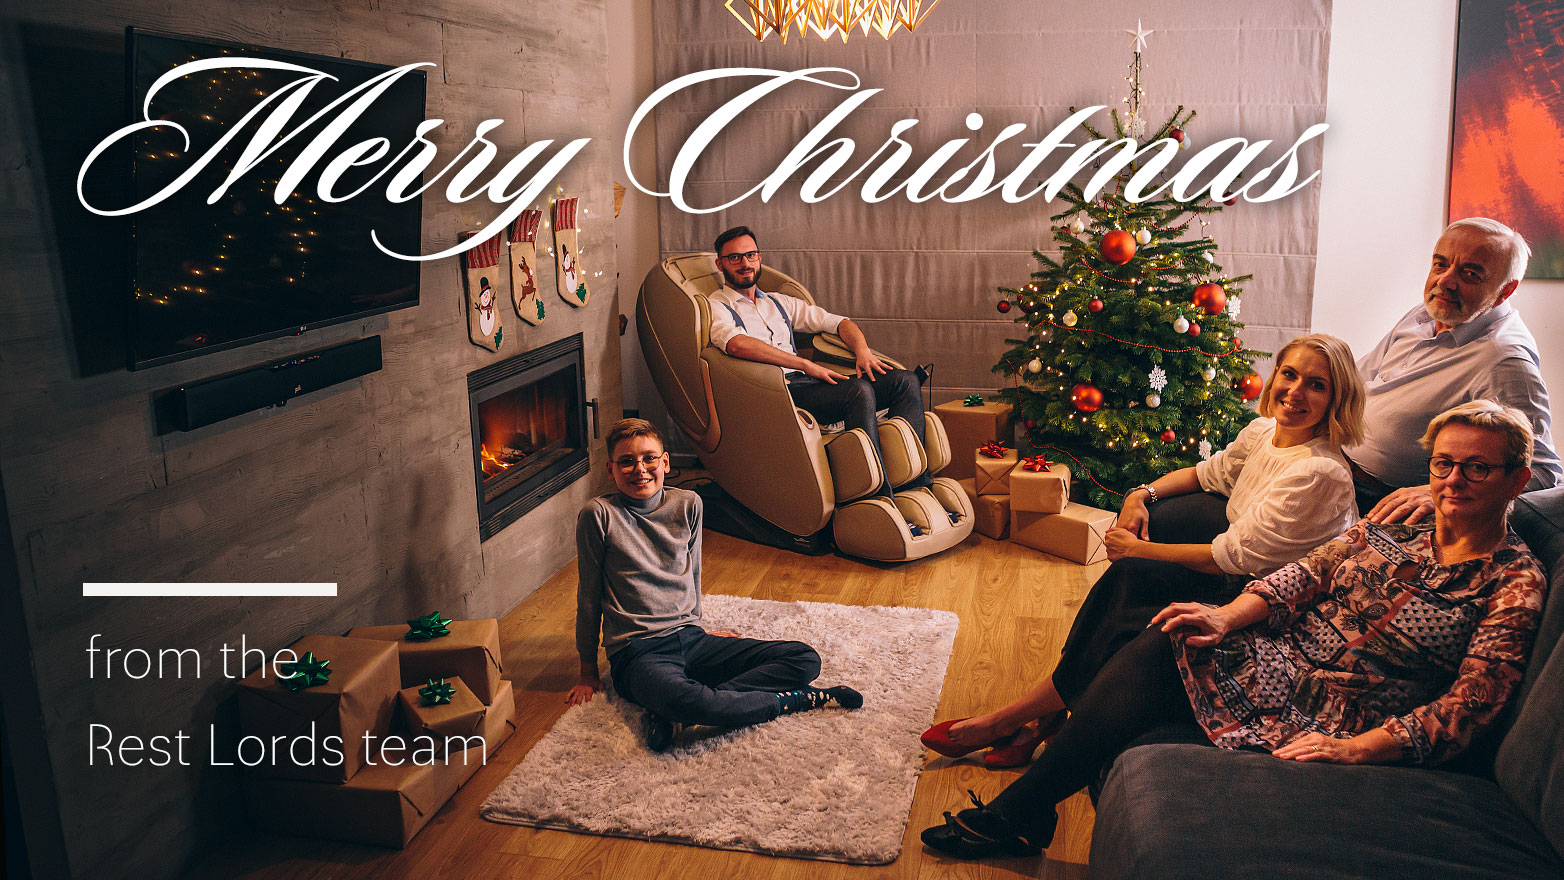 Merry Christmas from Rest Lords